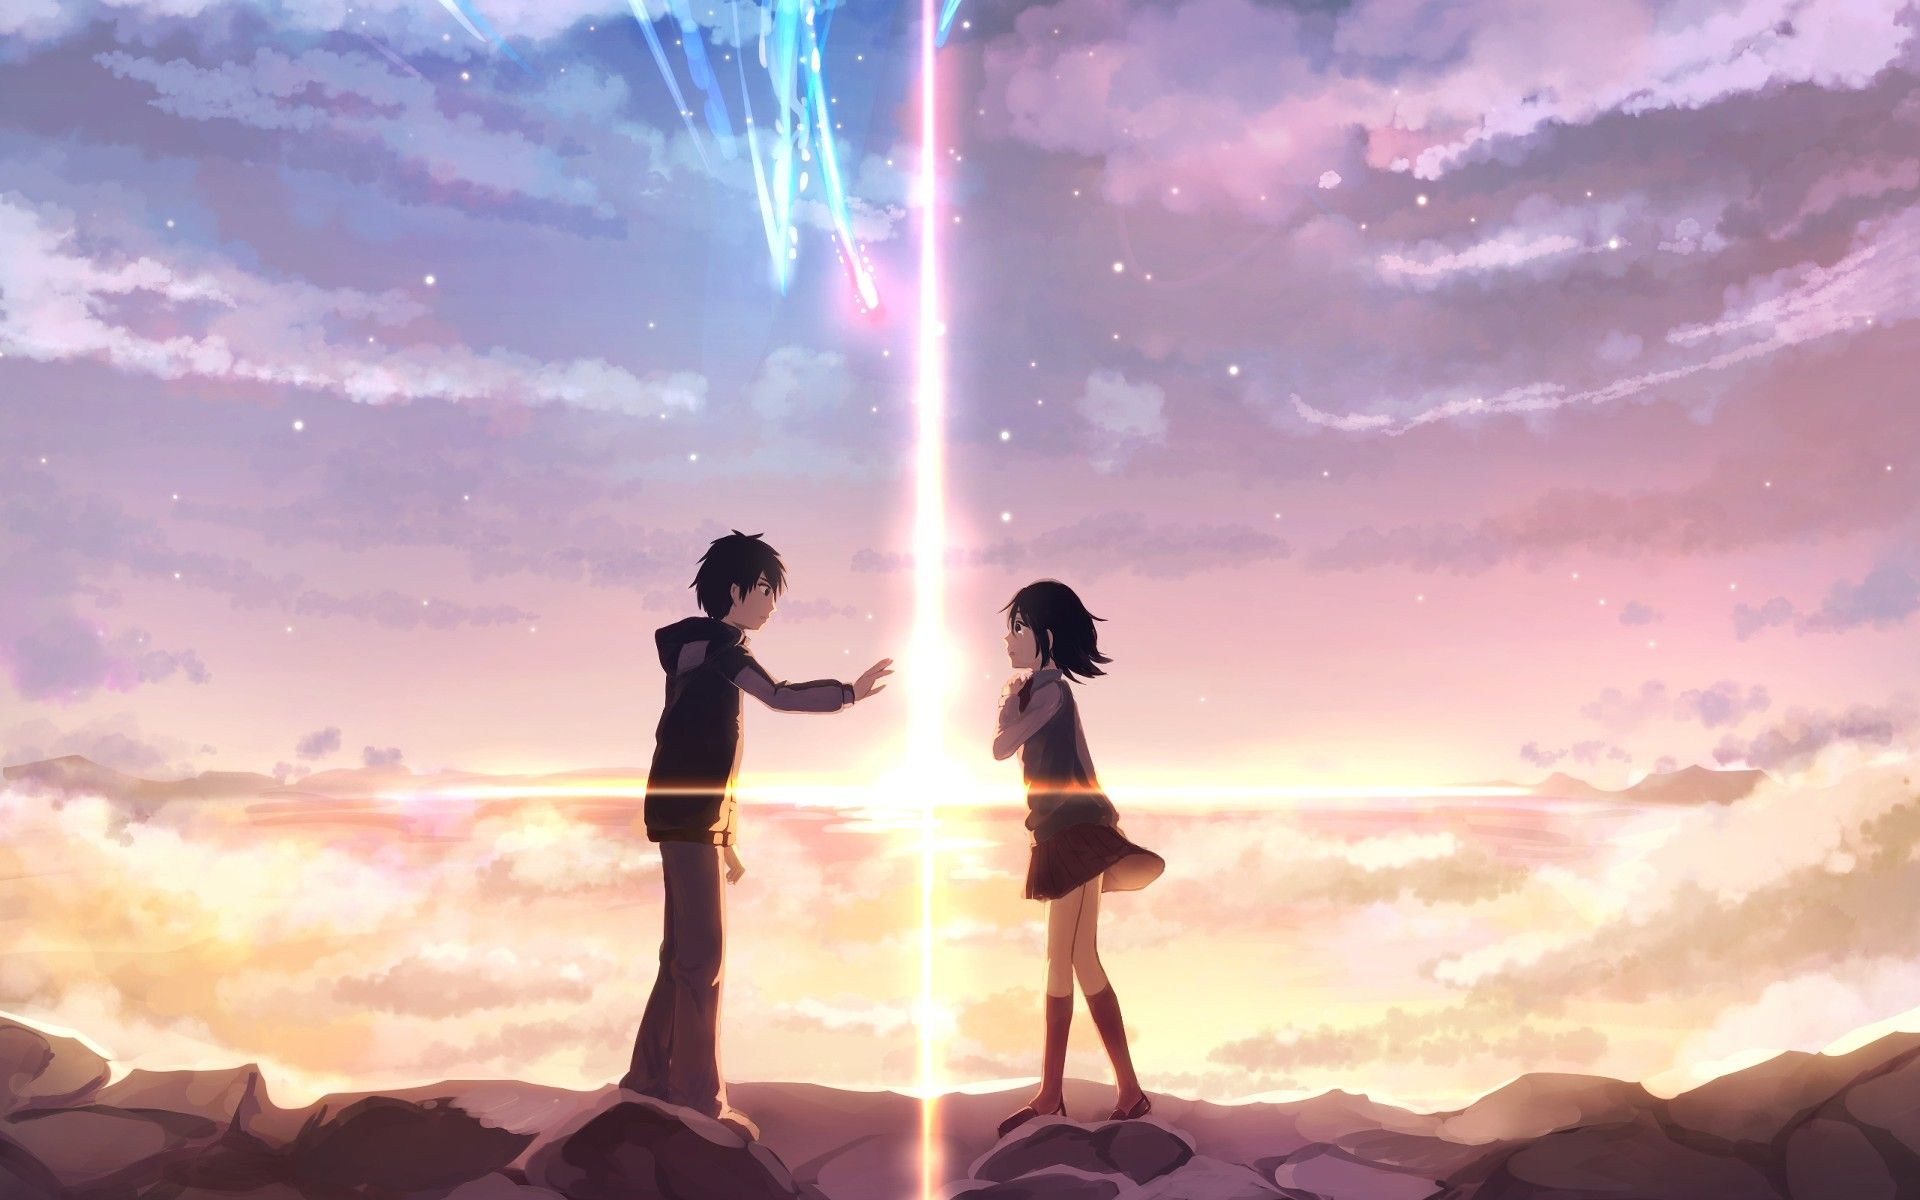 Pin By Andilo Barham On Your Name Anime In 2020 Kimi No Na Wa Best Background Images Your Name Anime